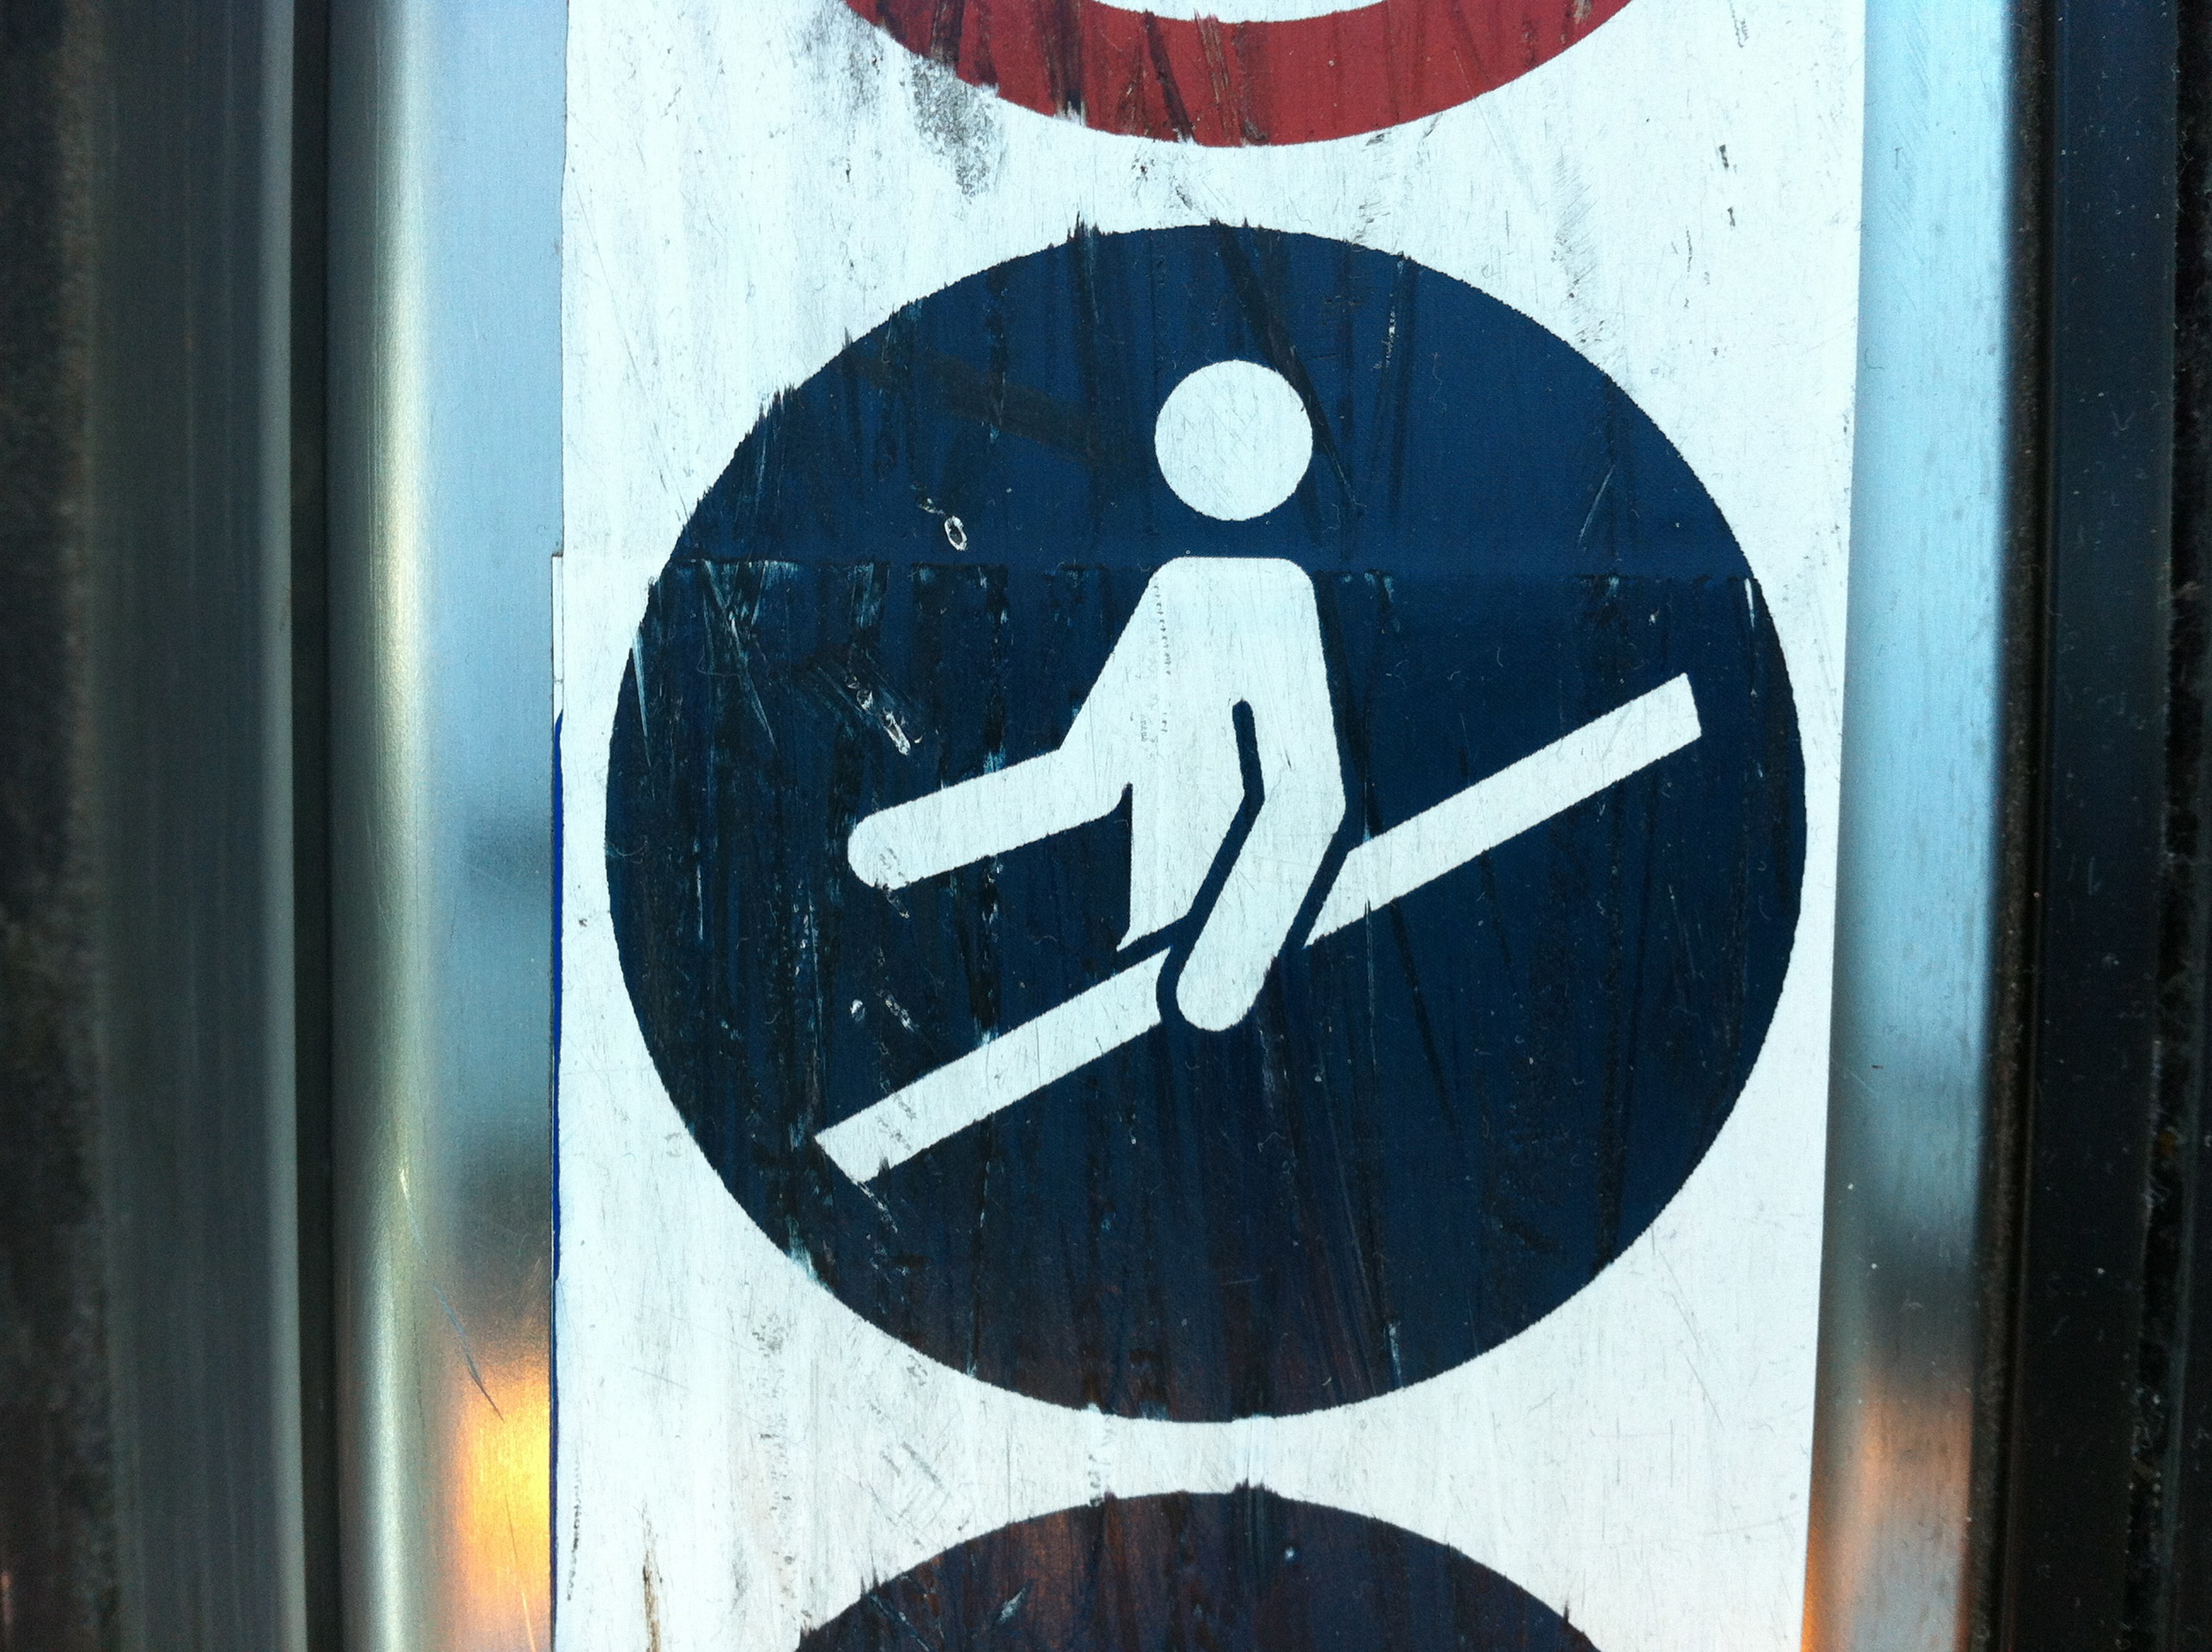 This area reserved for men carrying 2x4s.